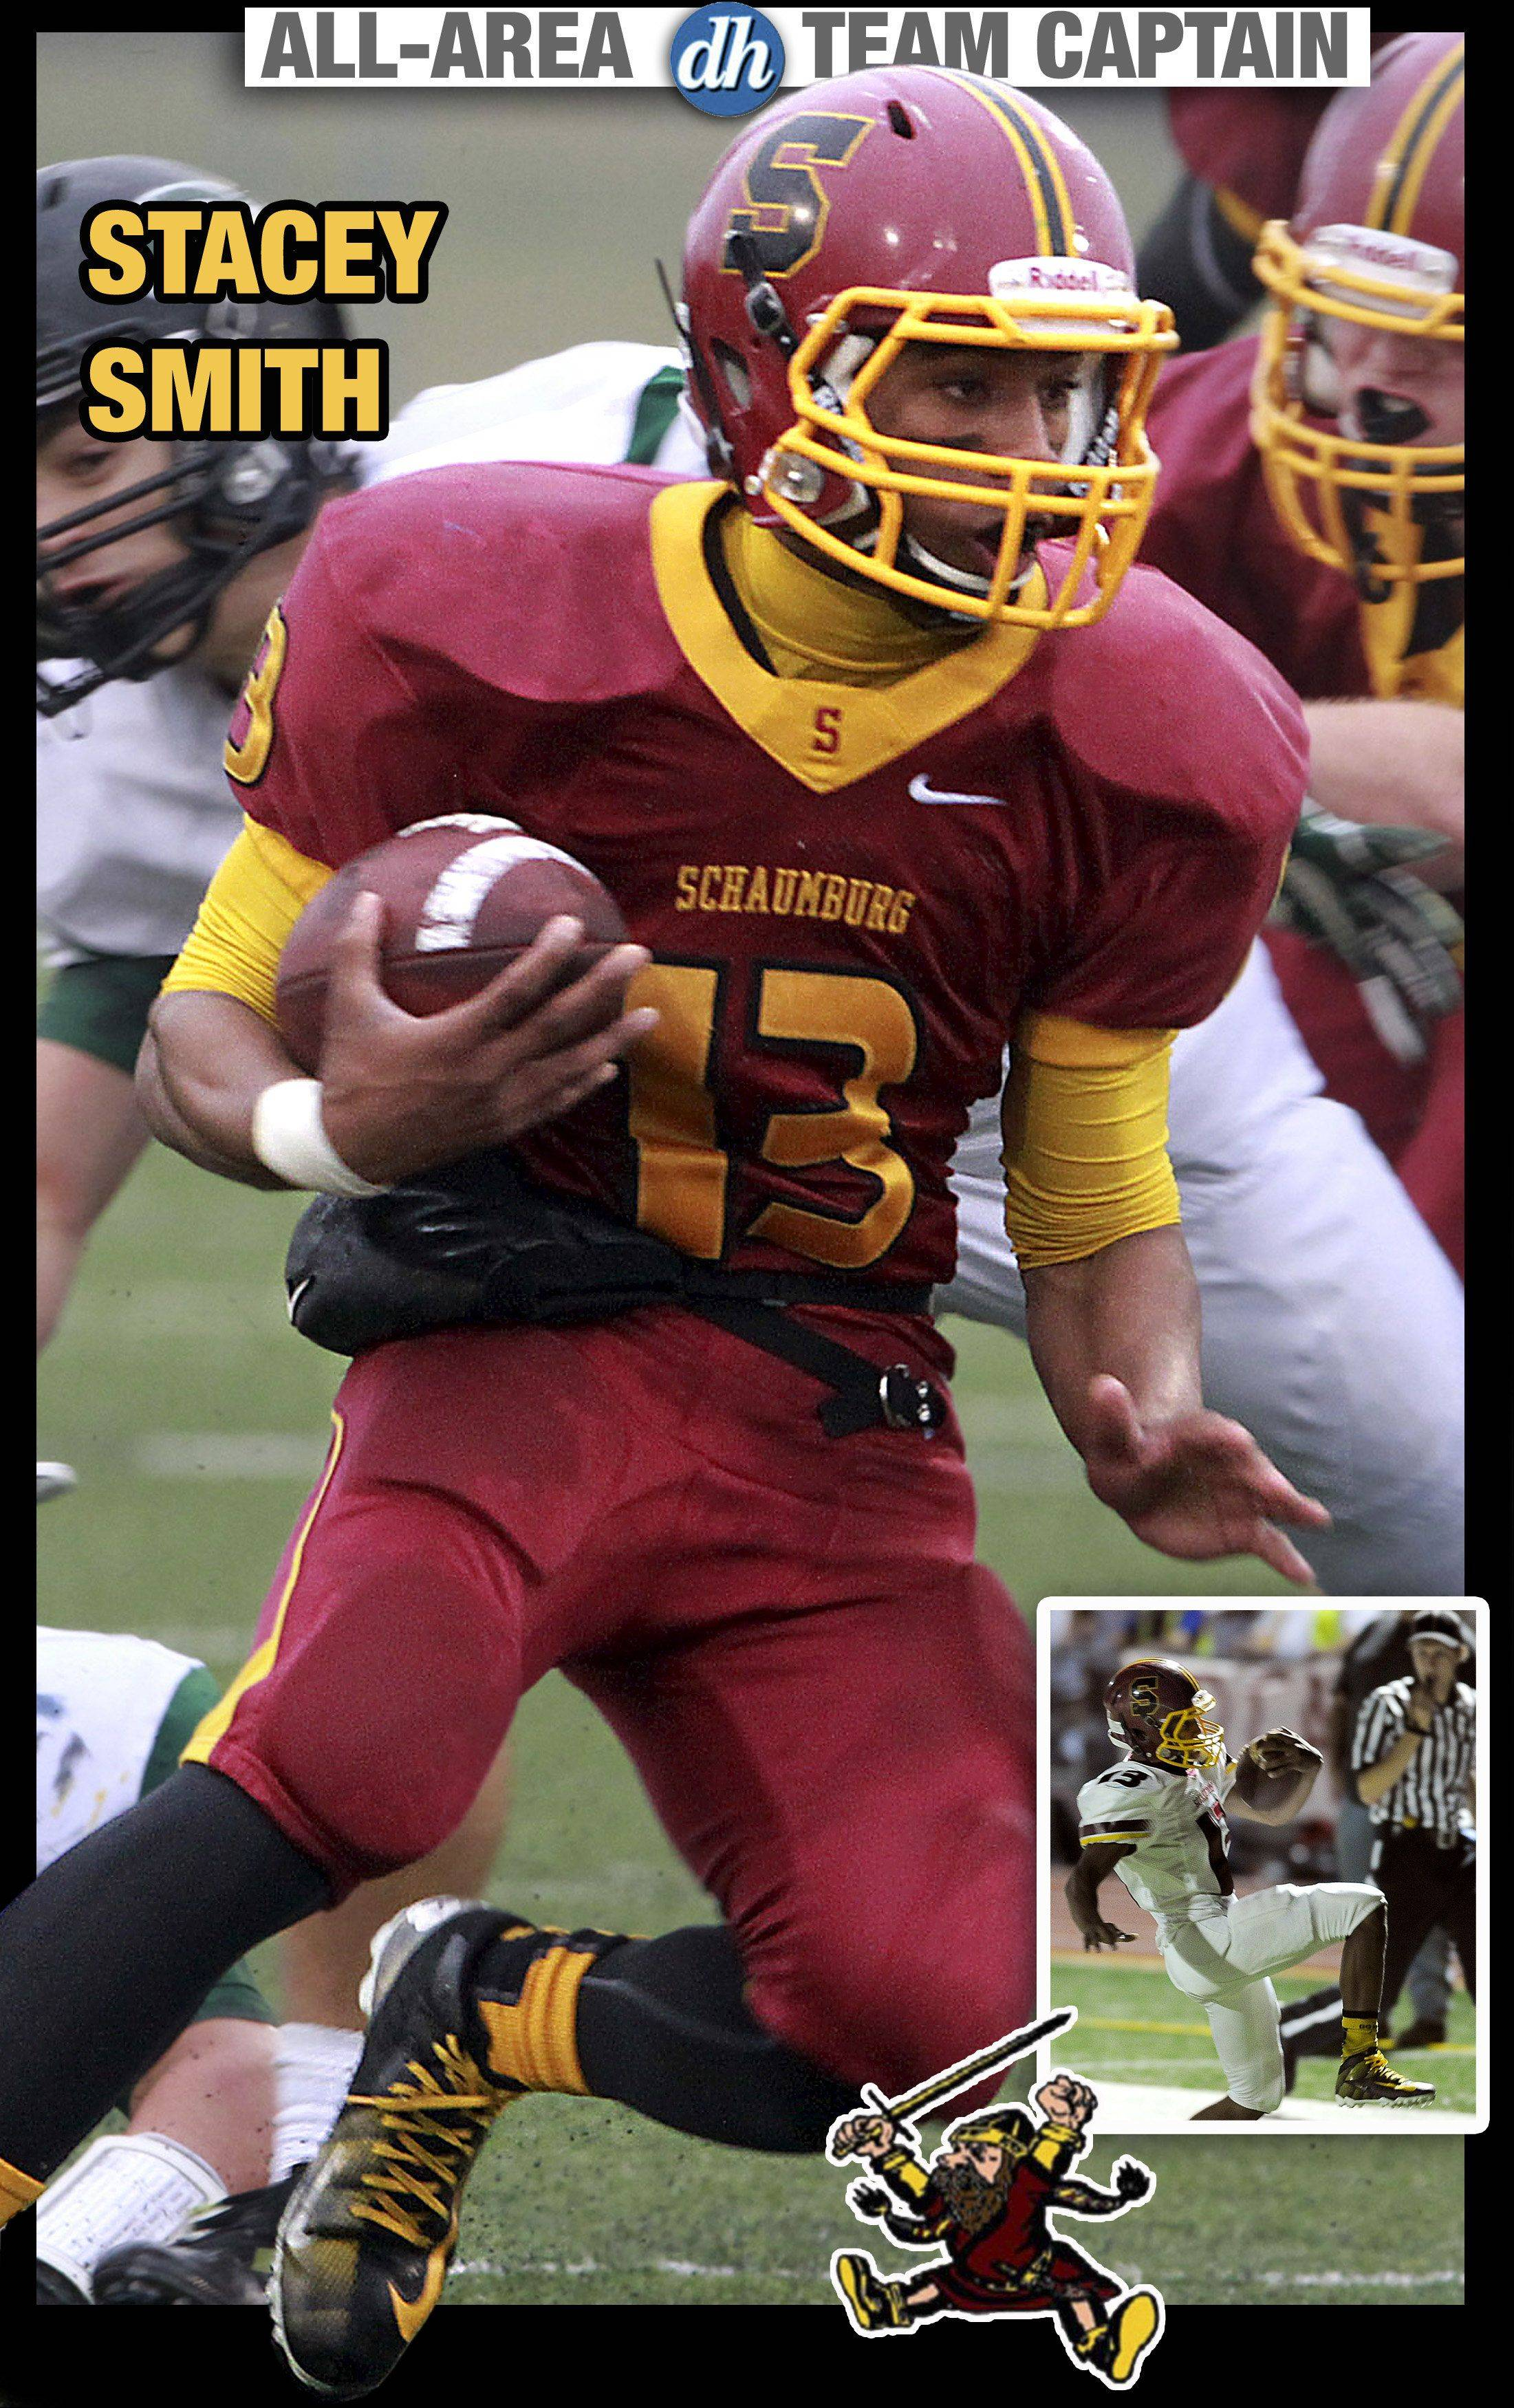 Stacey Smith of Schaumburg is a Daily Herald All-Area Team Captain in football for 2013.